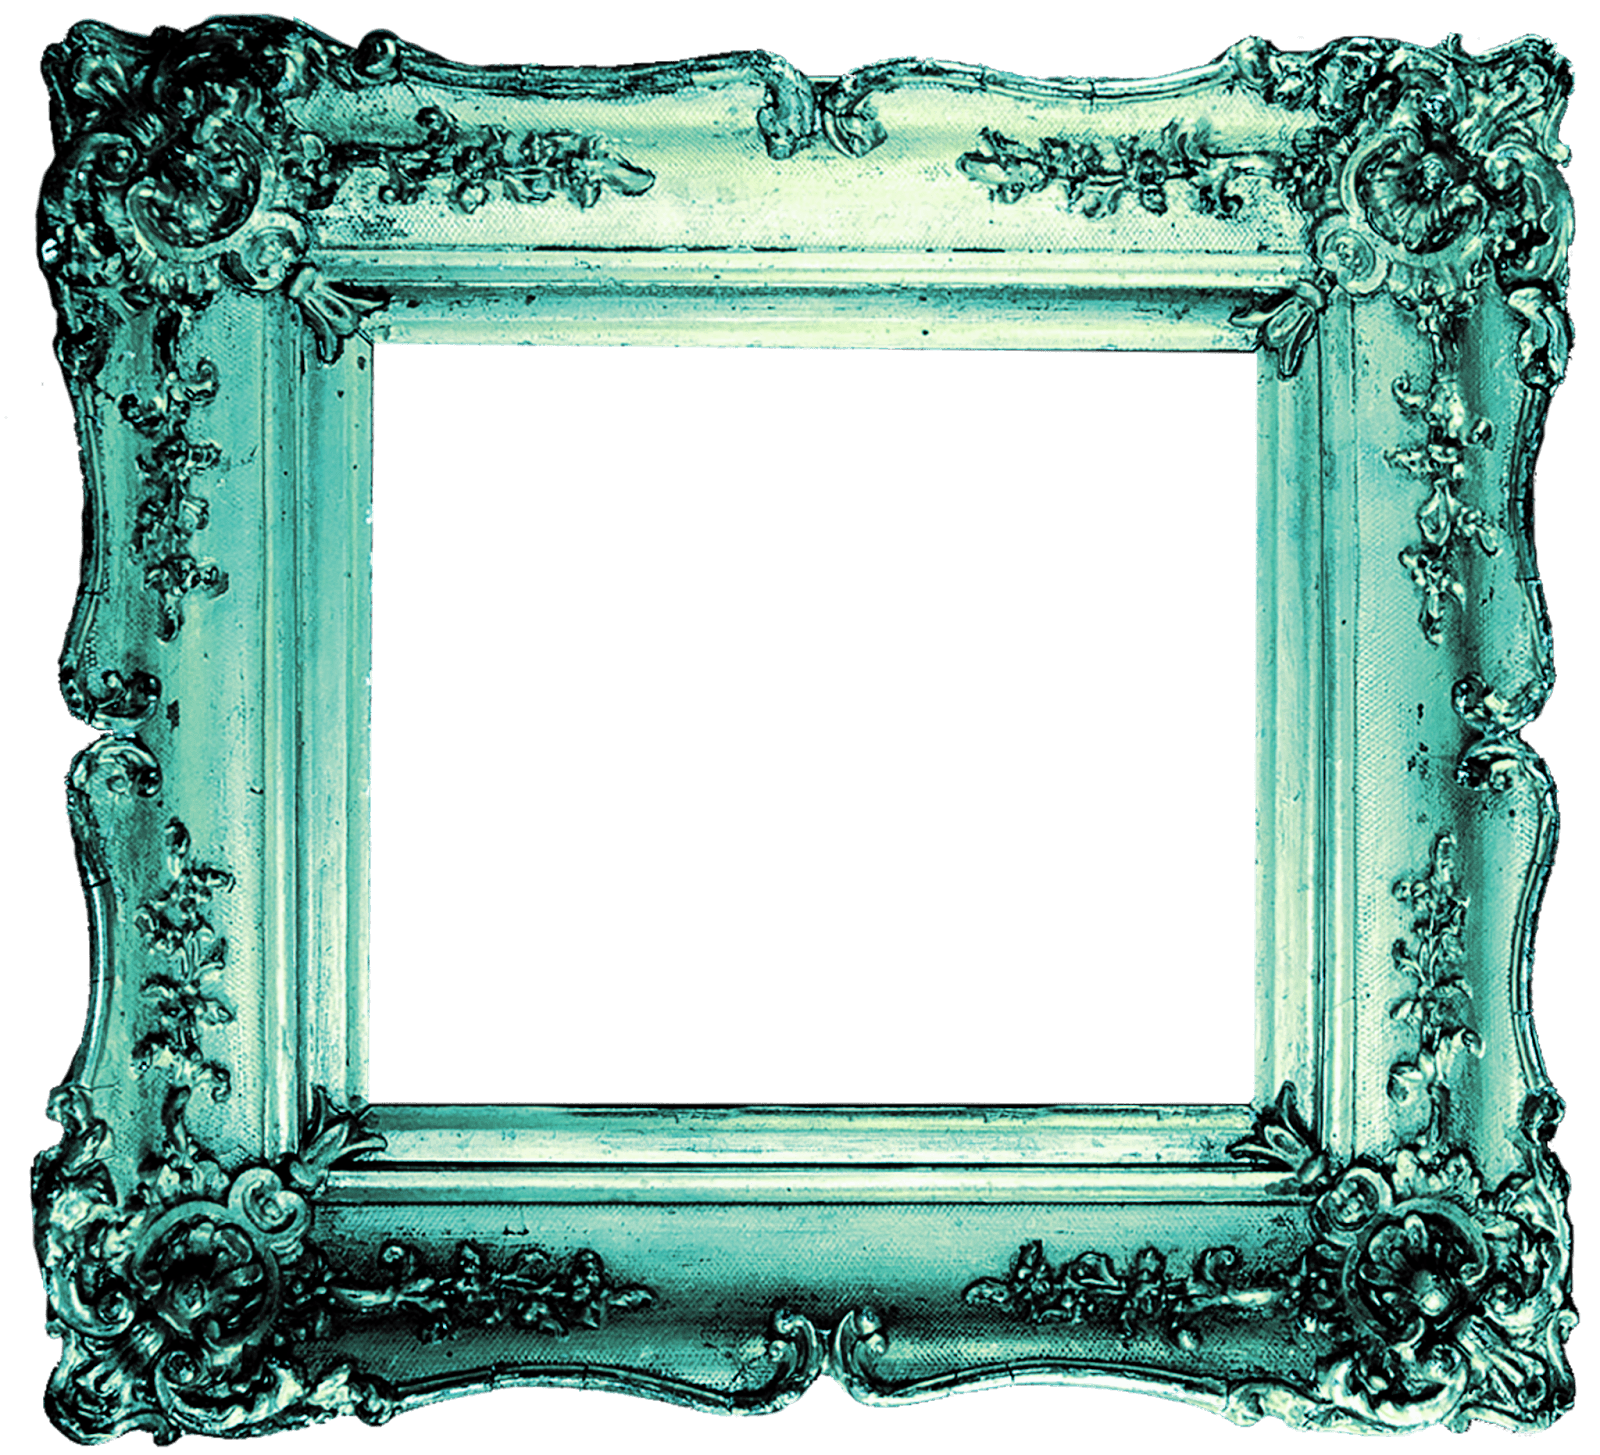 Photo frame png free download. Turquoise arts